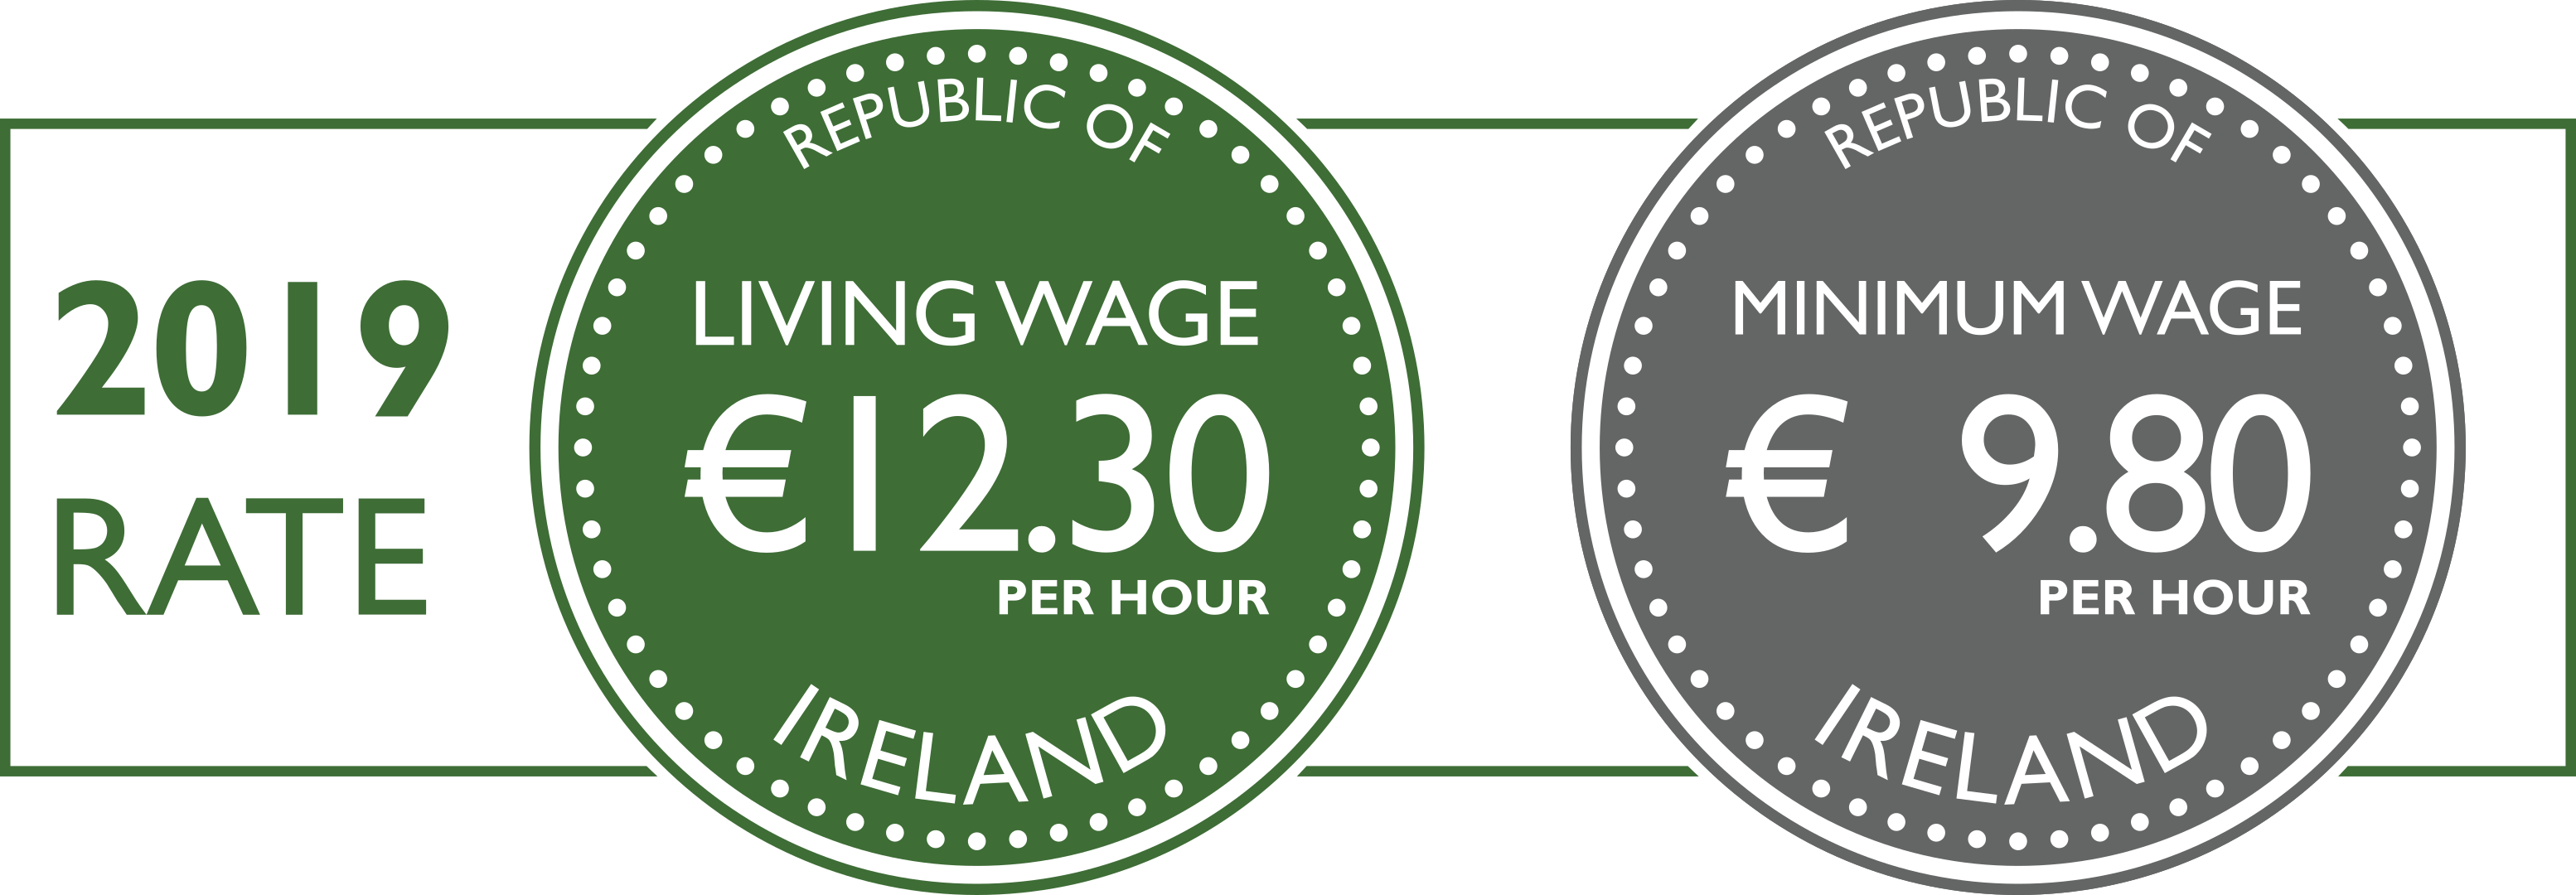 Republic of Ireland - Living Wage €12.30 per hour